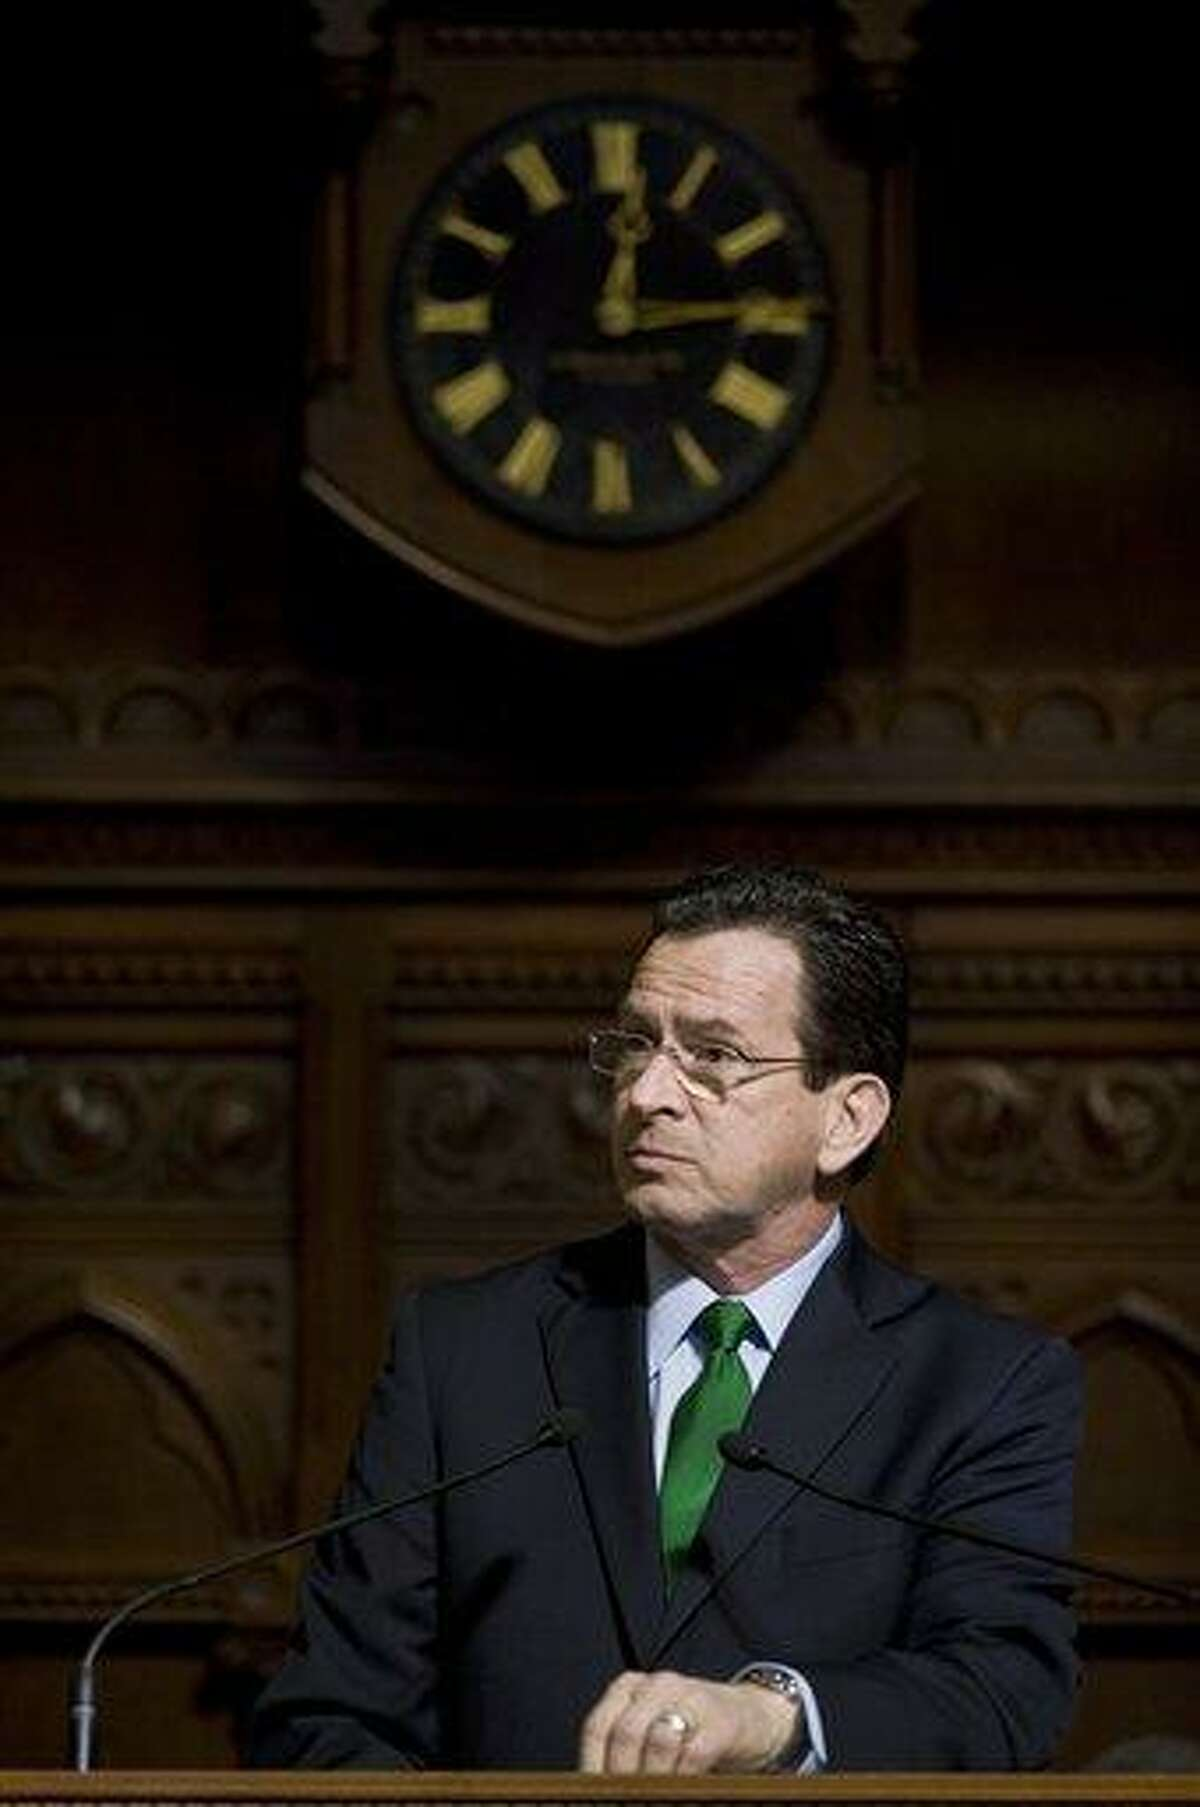 Gov. Dannel P. Malloy delivers the State of the State address at the State Capitol in Hartford earlier this month. Associated Press